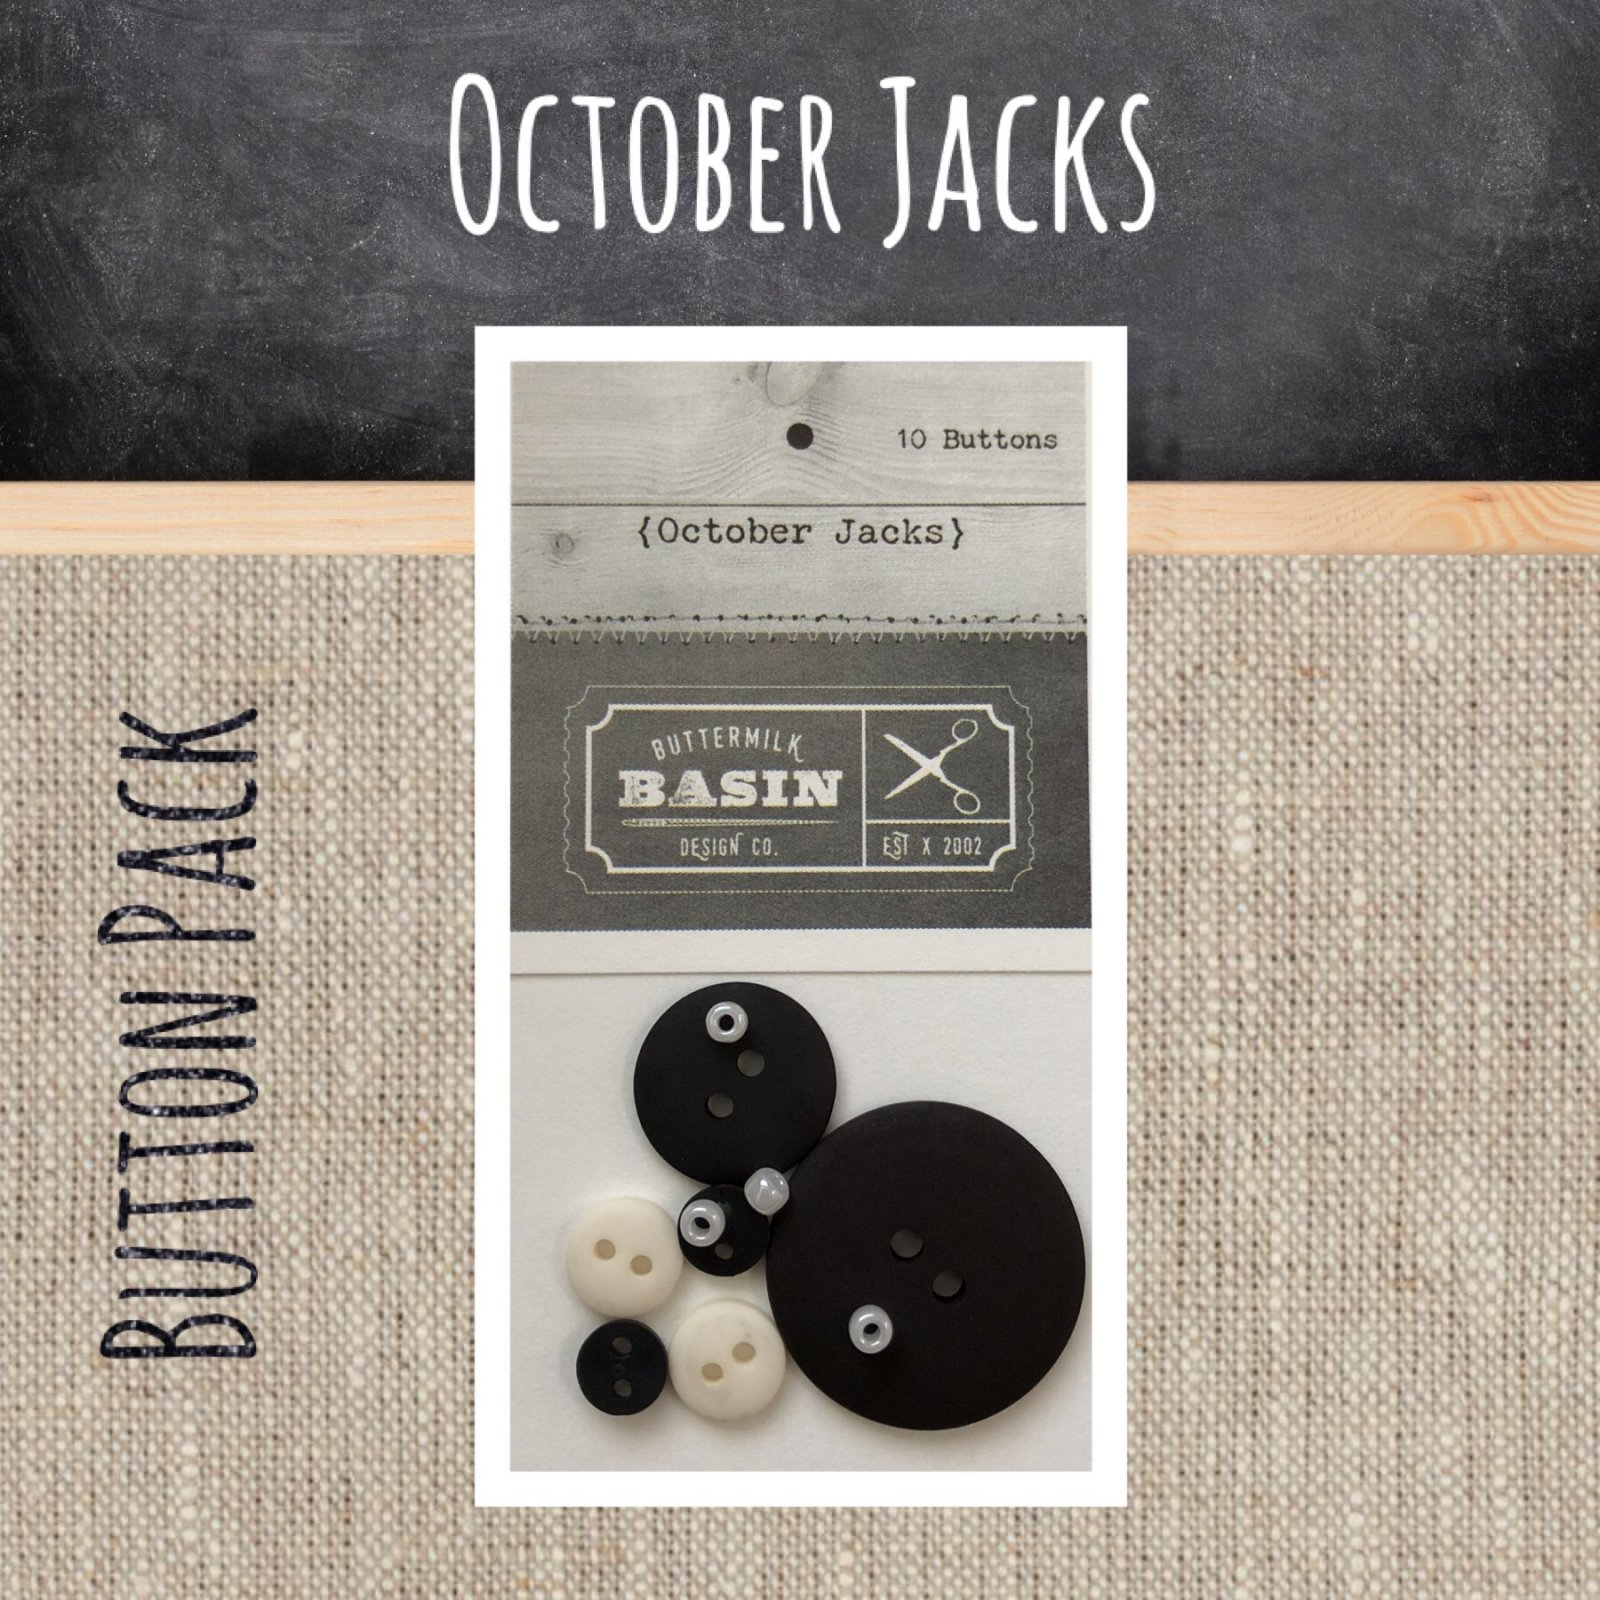 October Jacks BUTTON Pack